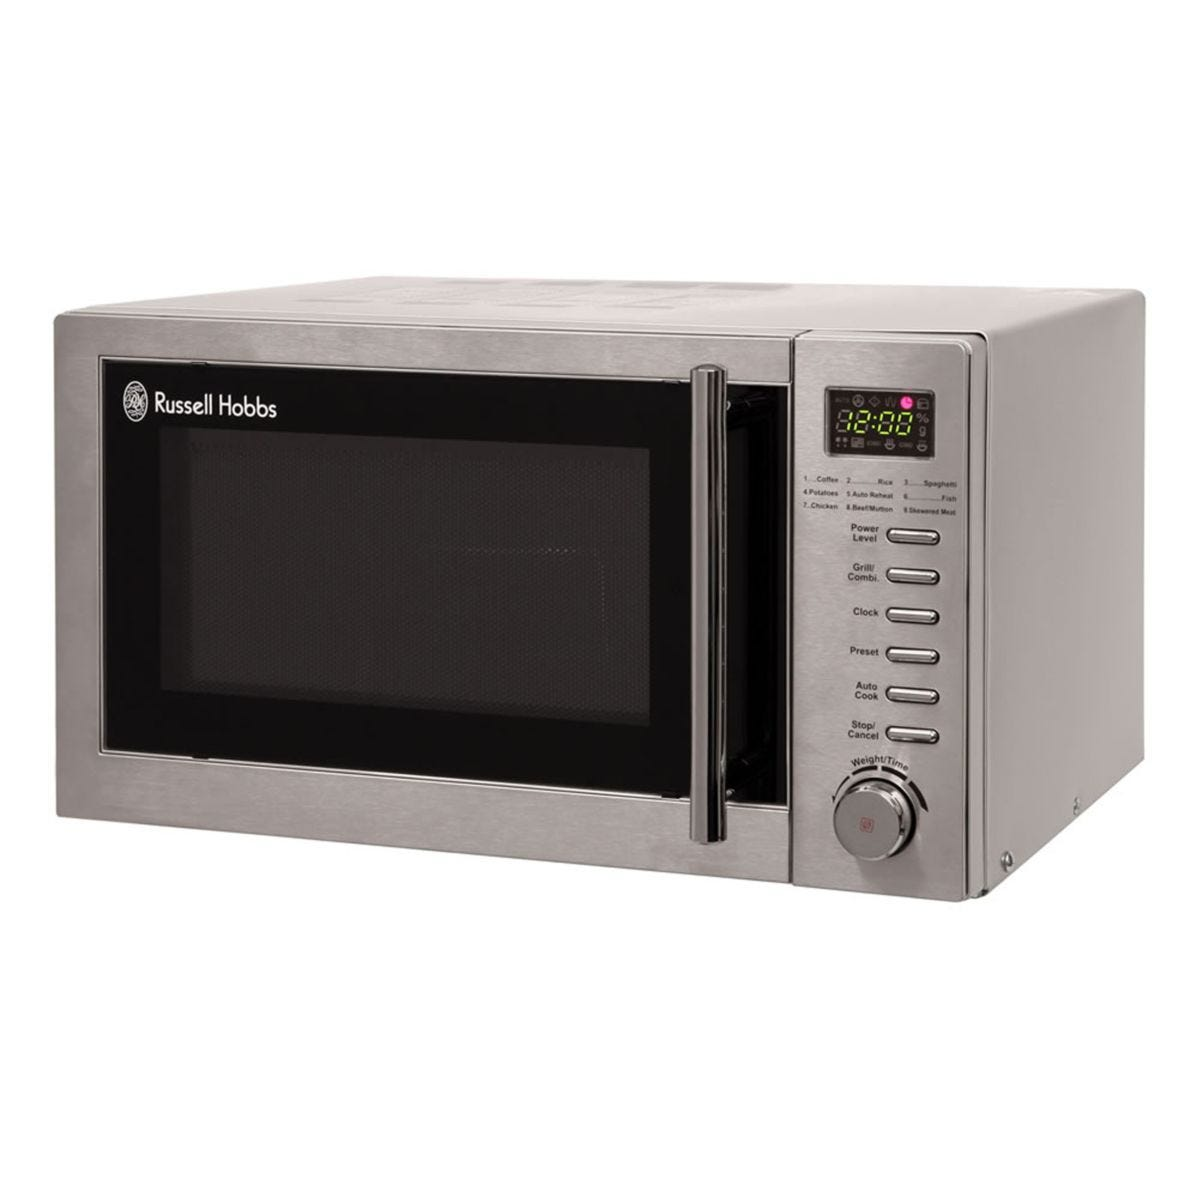 Russell Hobbs RHM2031 1000W 20L Digital Microwave with Grill - Stainless Steel